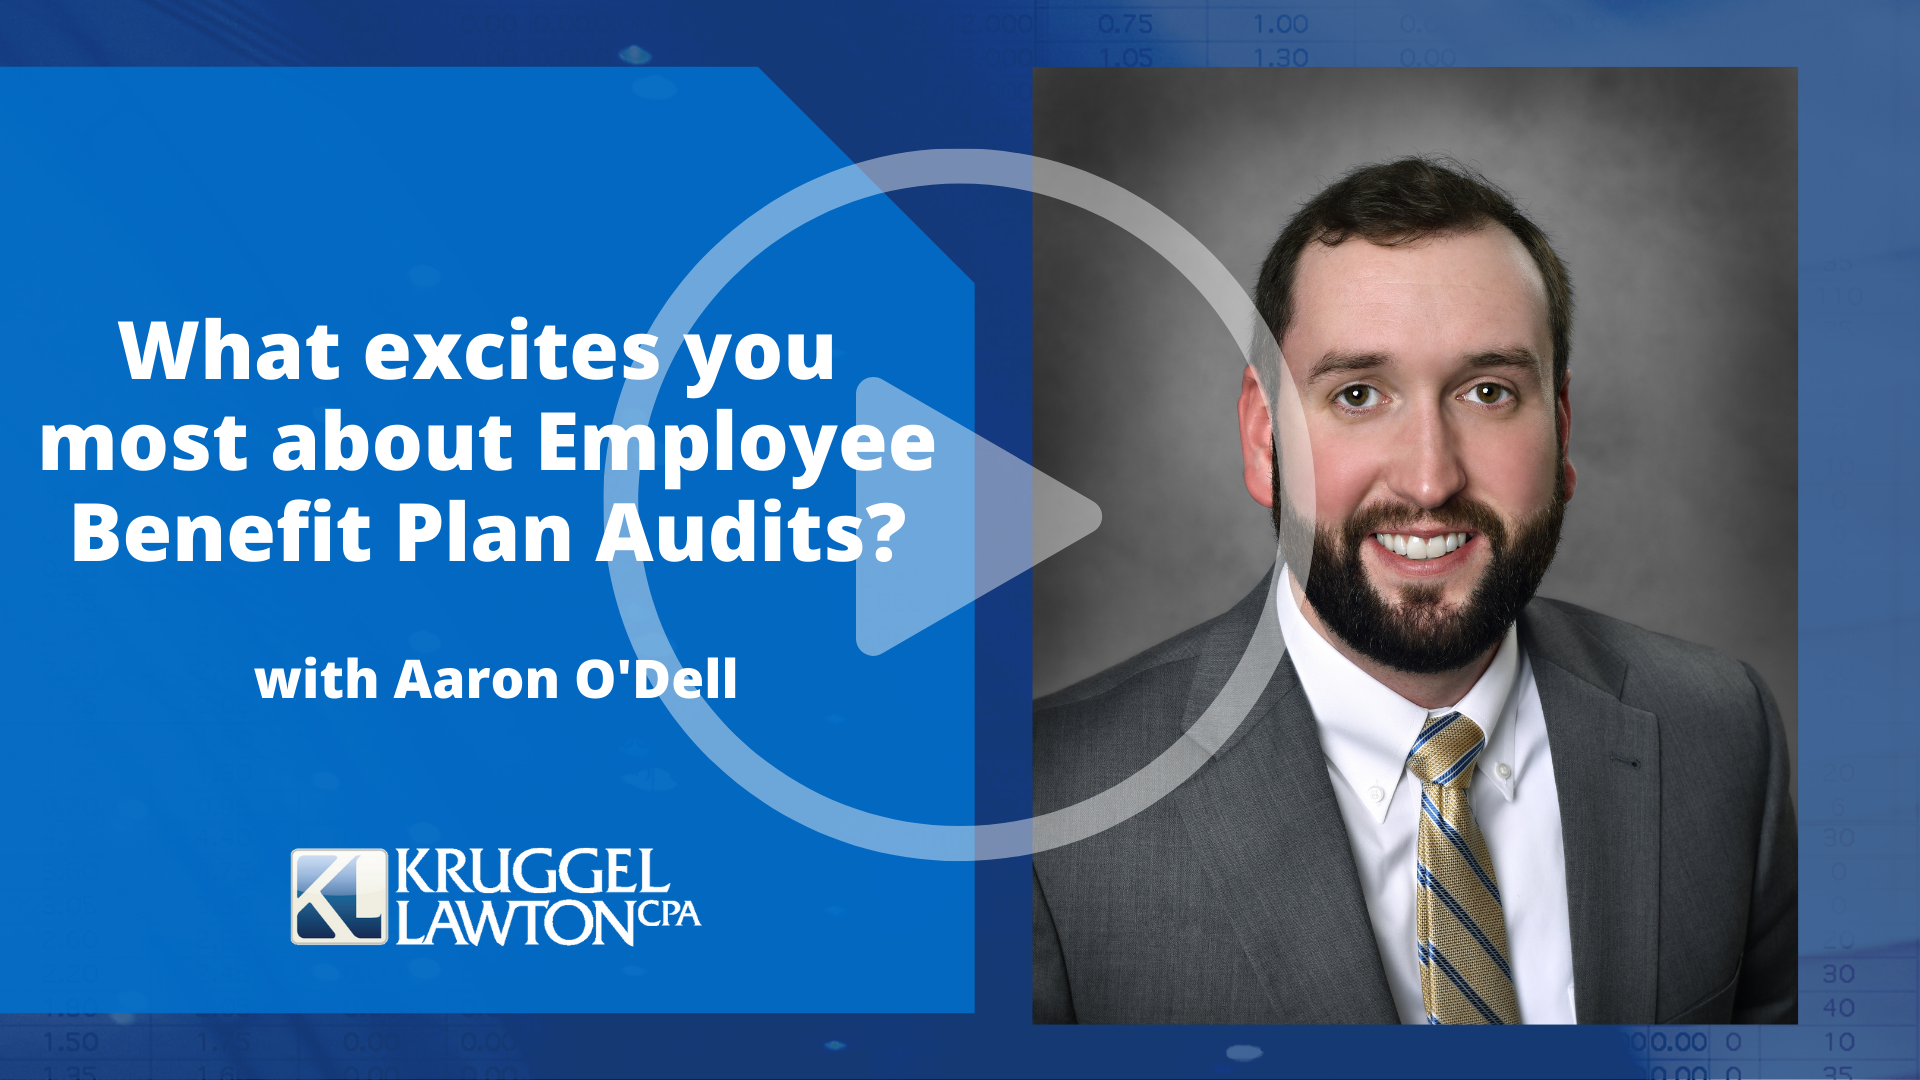 Aaron O'Dell Breaks Down What He Enjoys Most About Employee Benefit Plan Audits